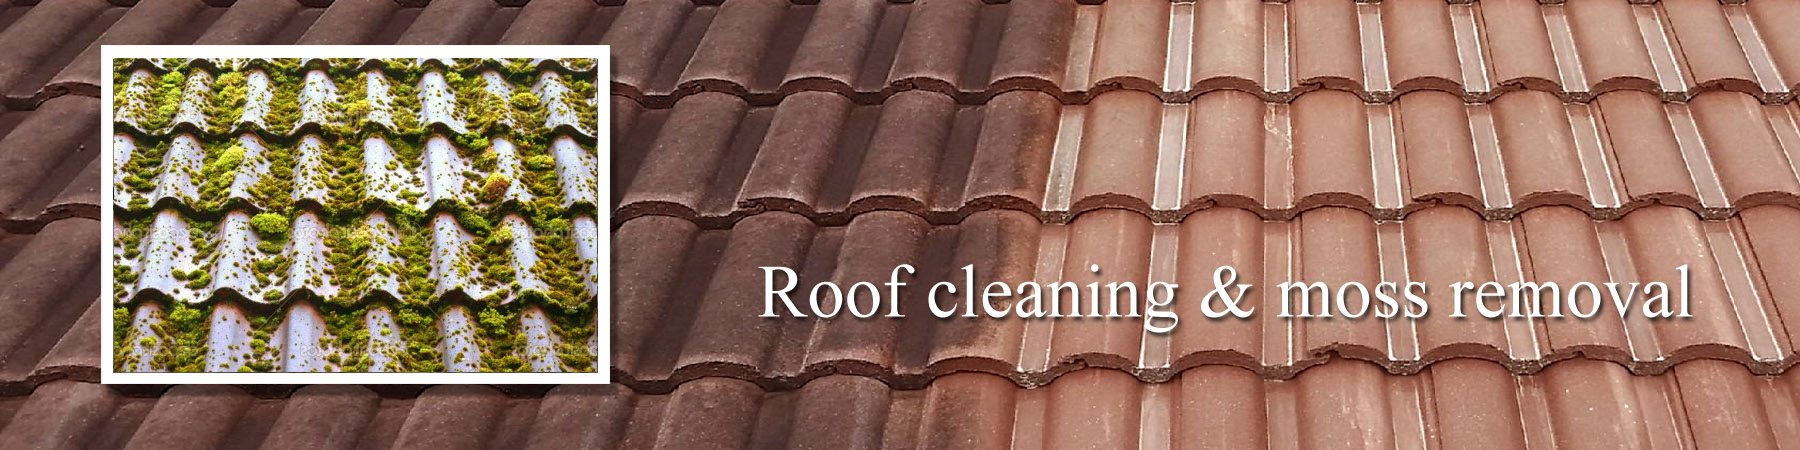 J.R. Roof Cleaning Kennington roof moss removal repairs & coating J R Cleaning